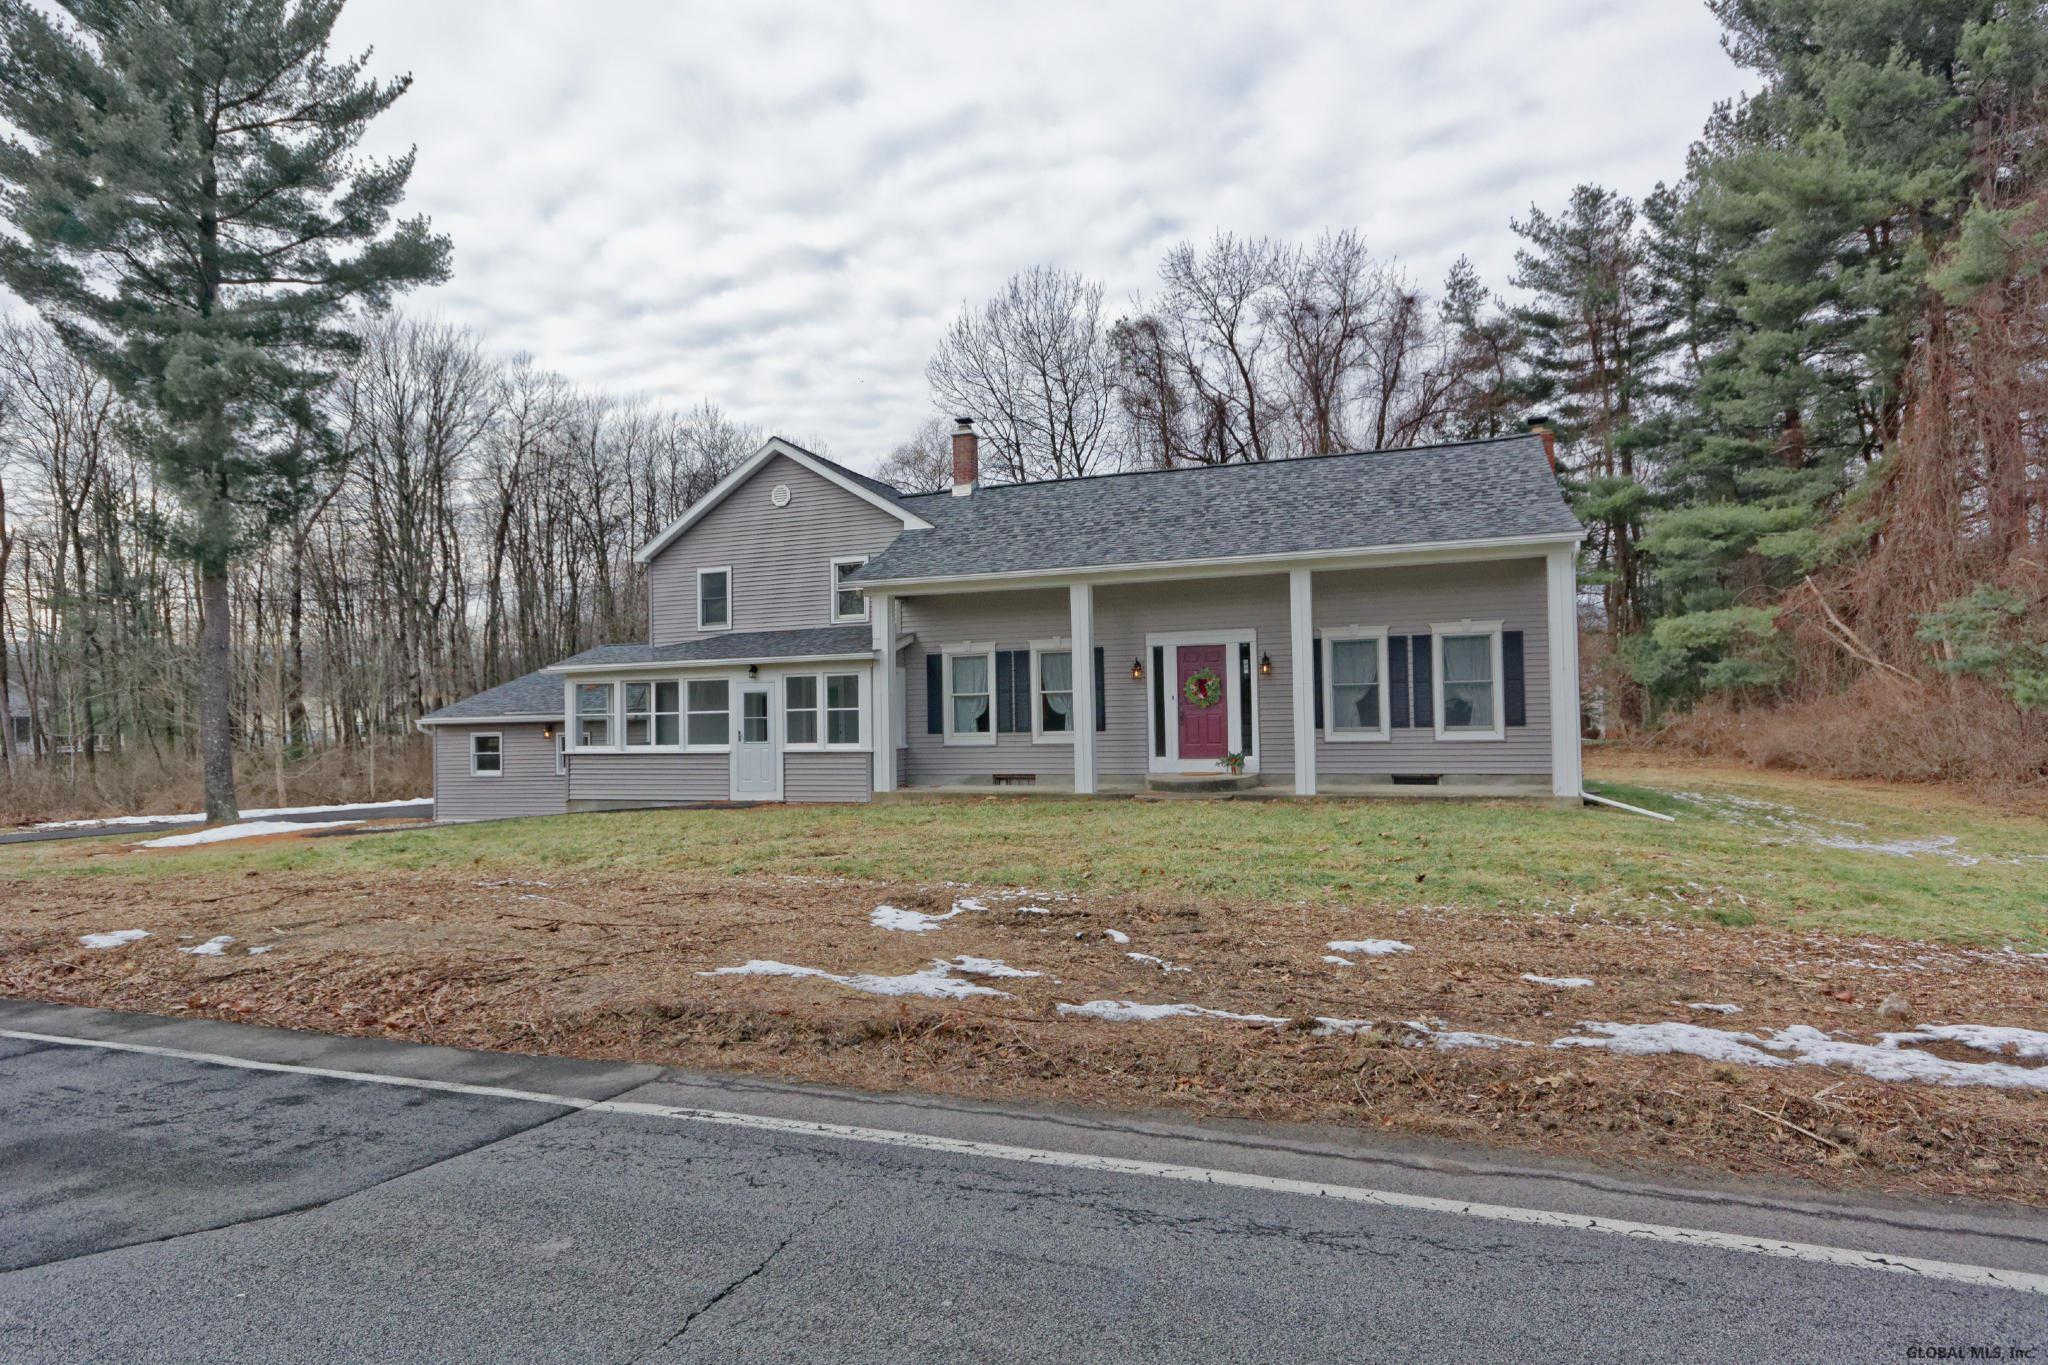 200 Moe Rd, Clifton Park, NY 12065 now has a new price of $409,000!